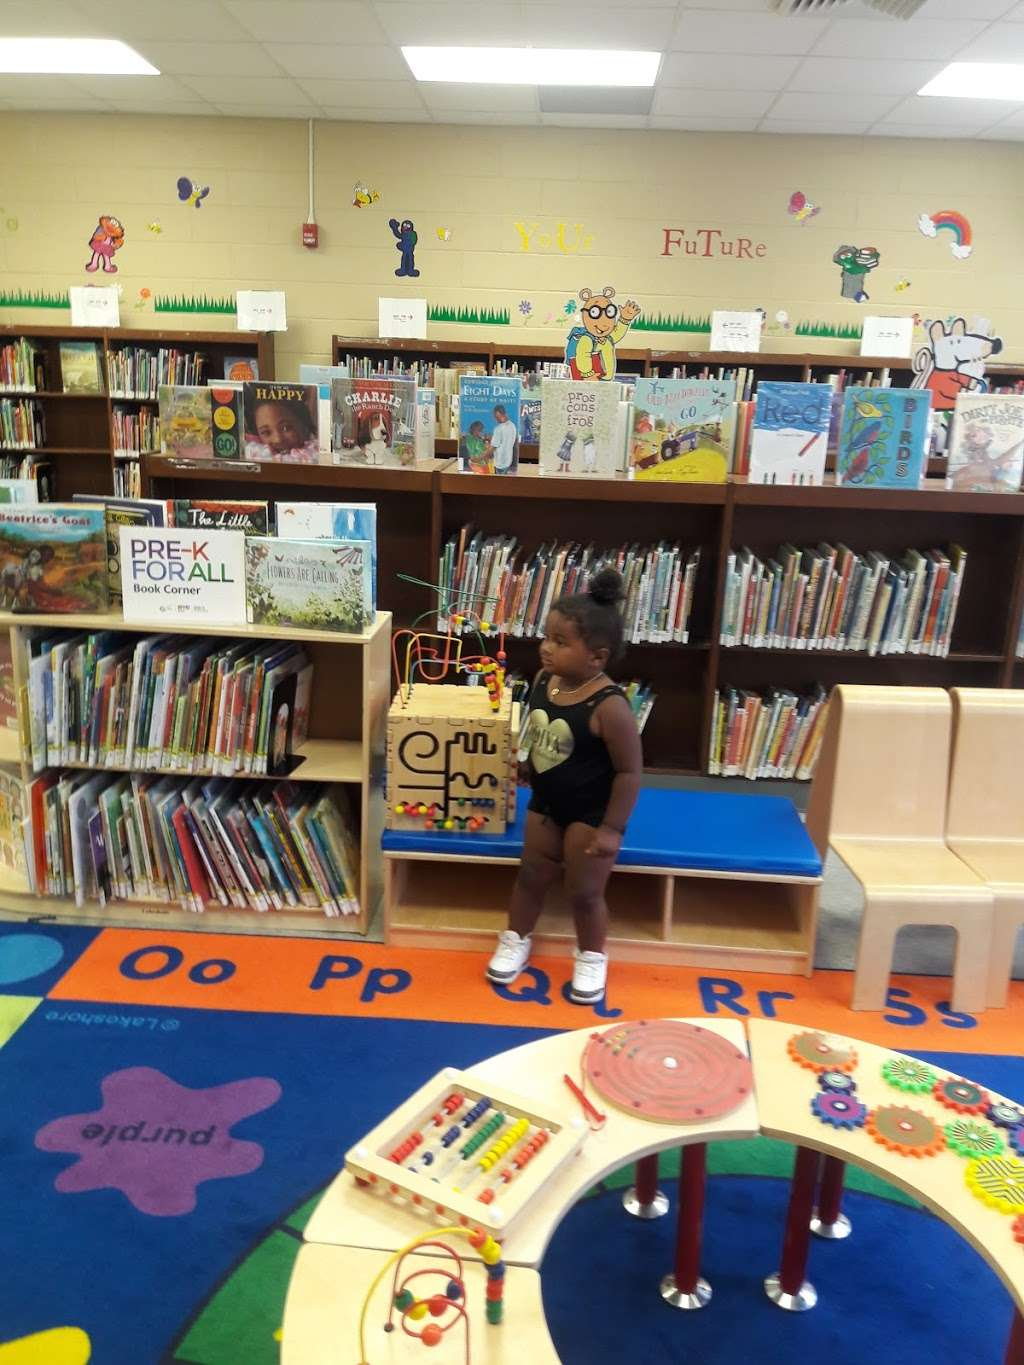 Throgs Neck Library - library  | Photo 2 of 7 | Address: 3025 Cross Bronx Expy, The Bronx, NY 10465, USA | Phone: (718) 792-2612